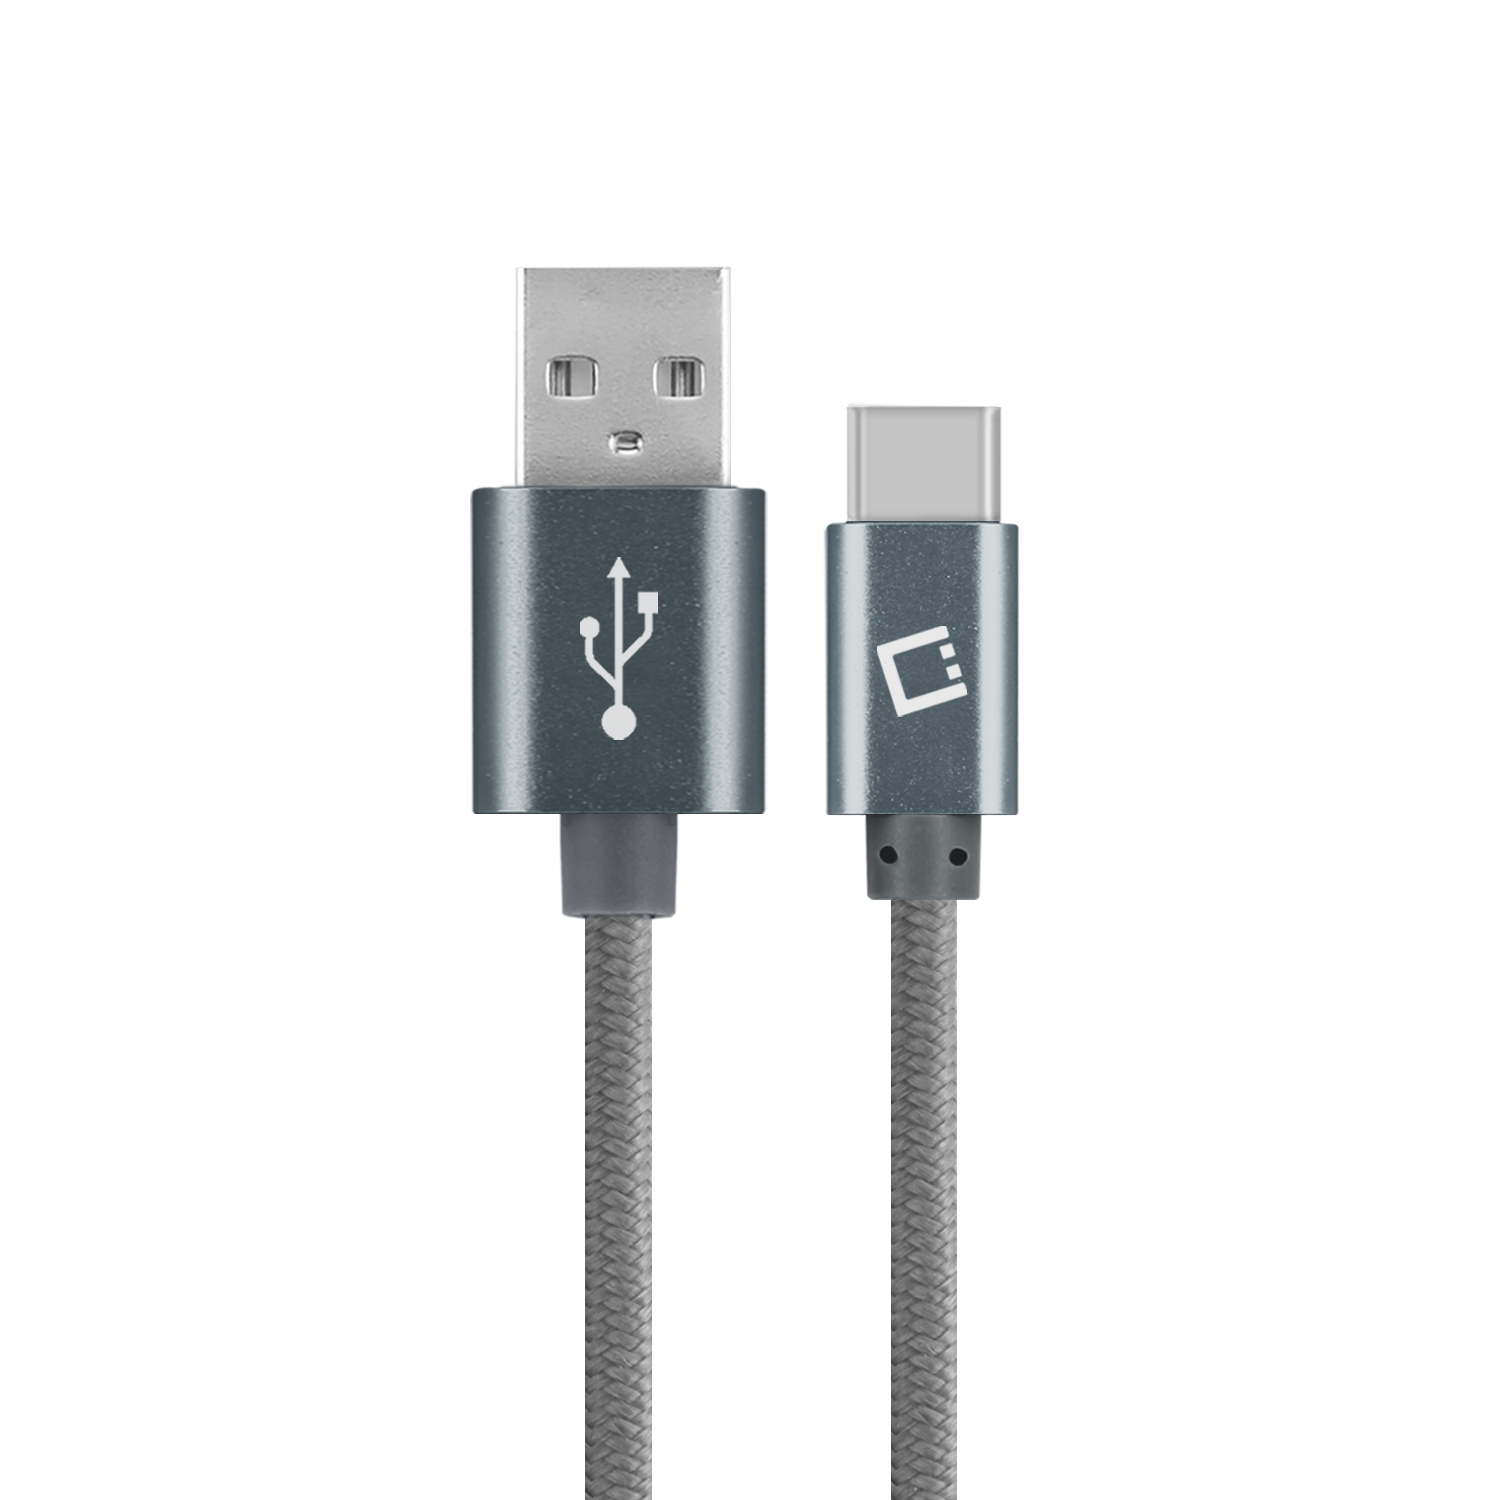 Samsung Galaxy S20 USB Type-C To Type-A Braided Data Power Cable Grey 4ft Braided